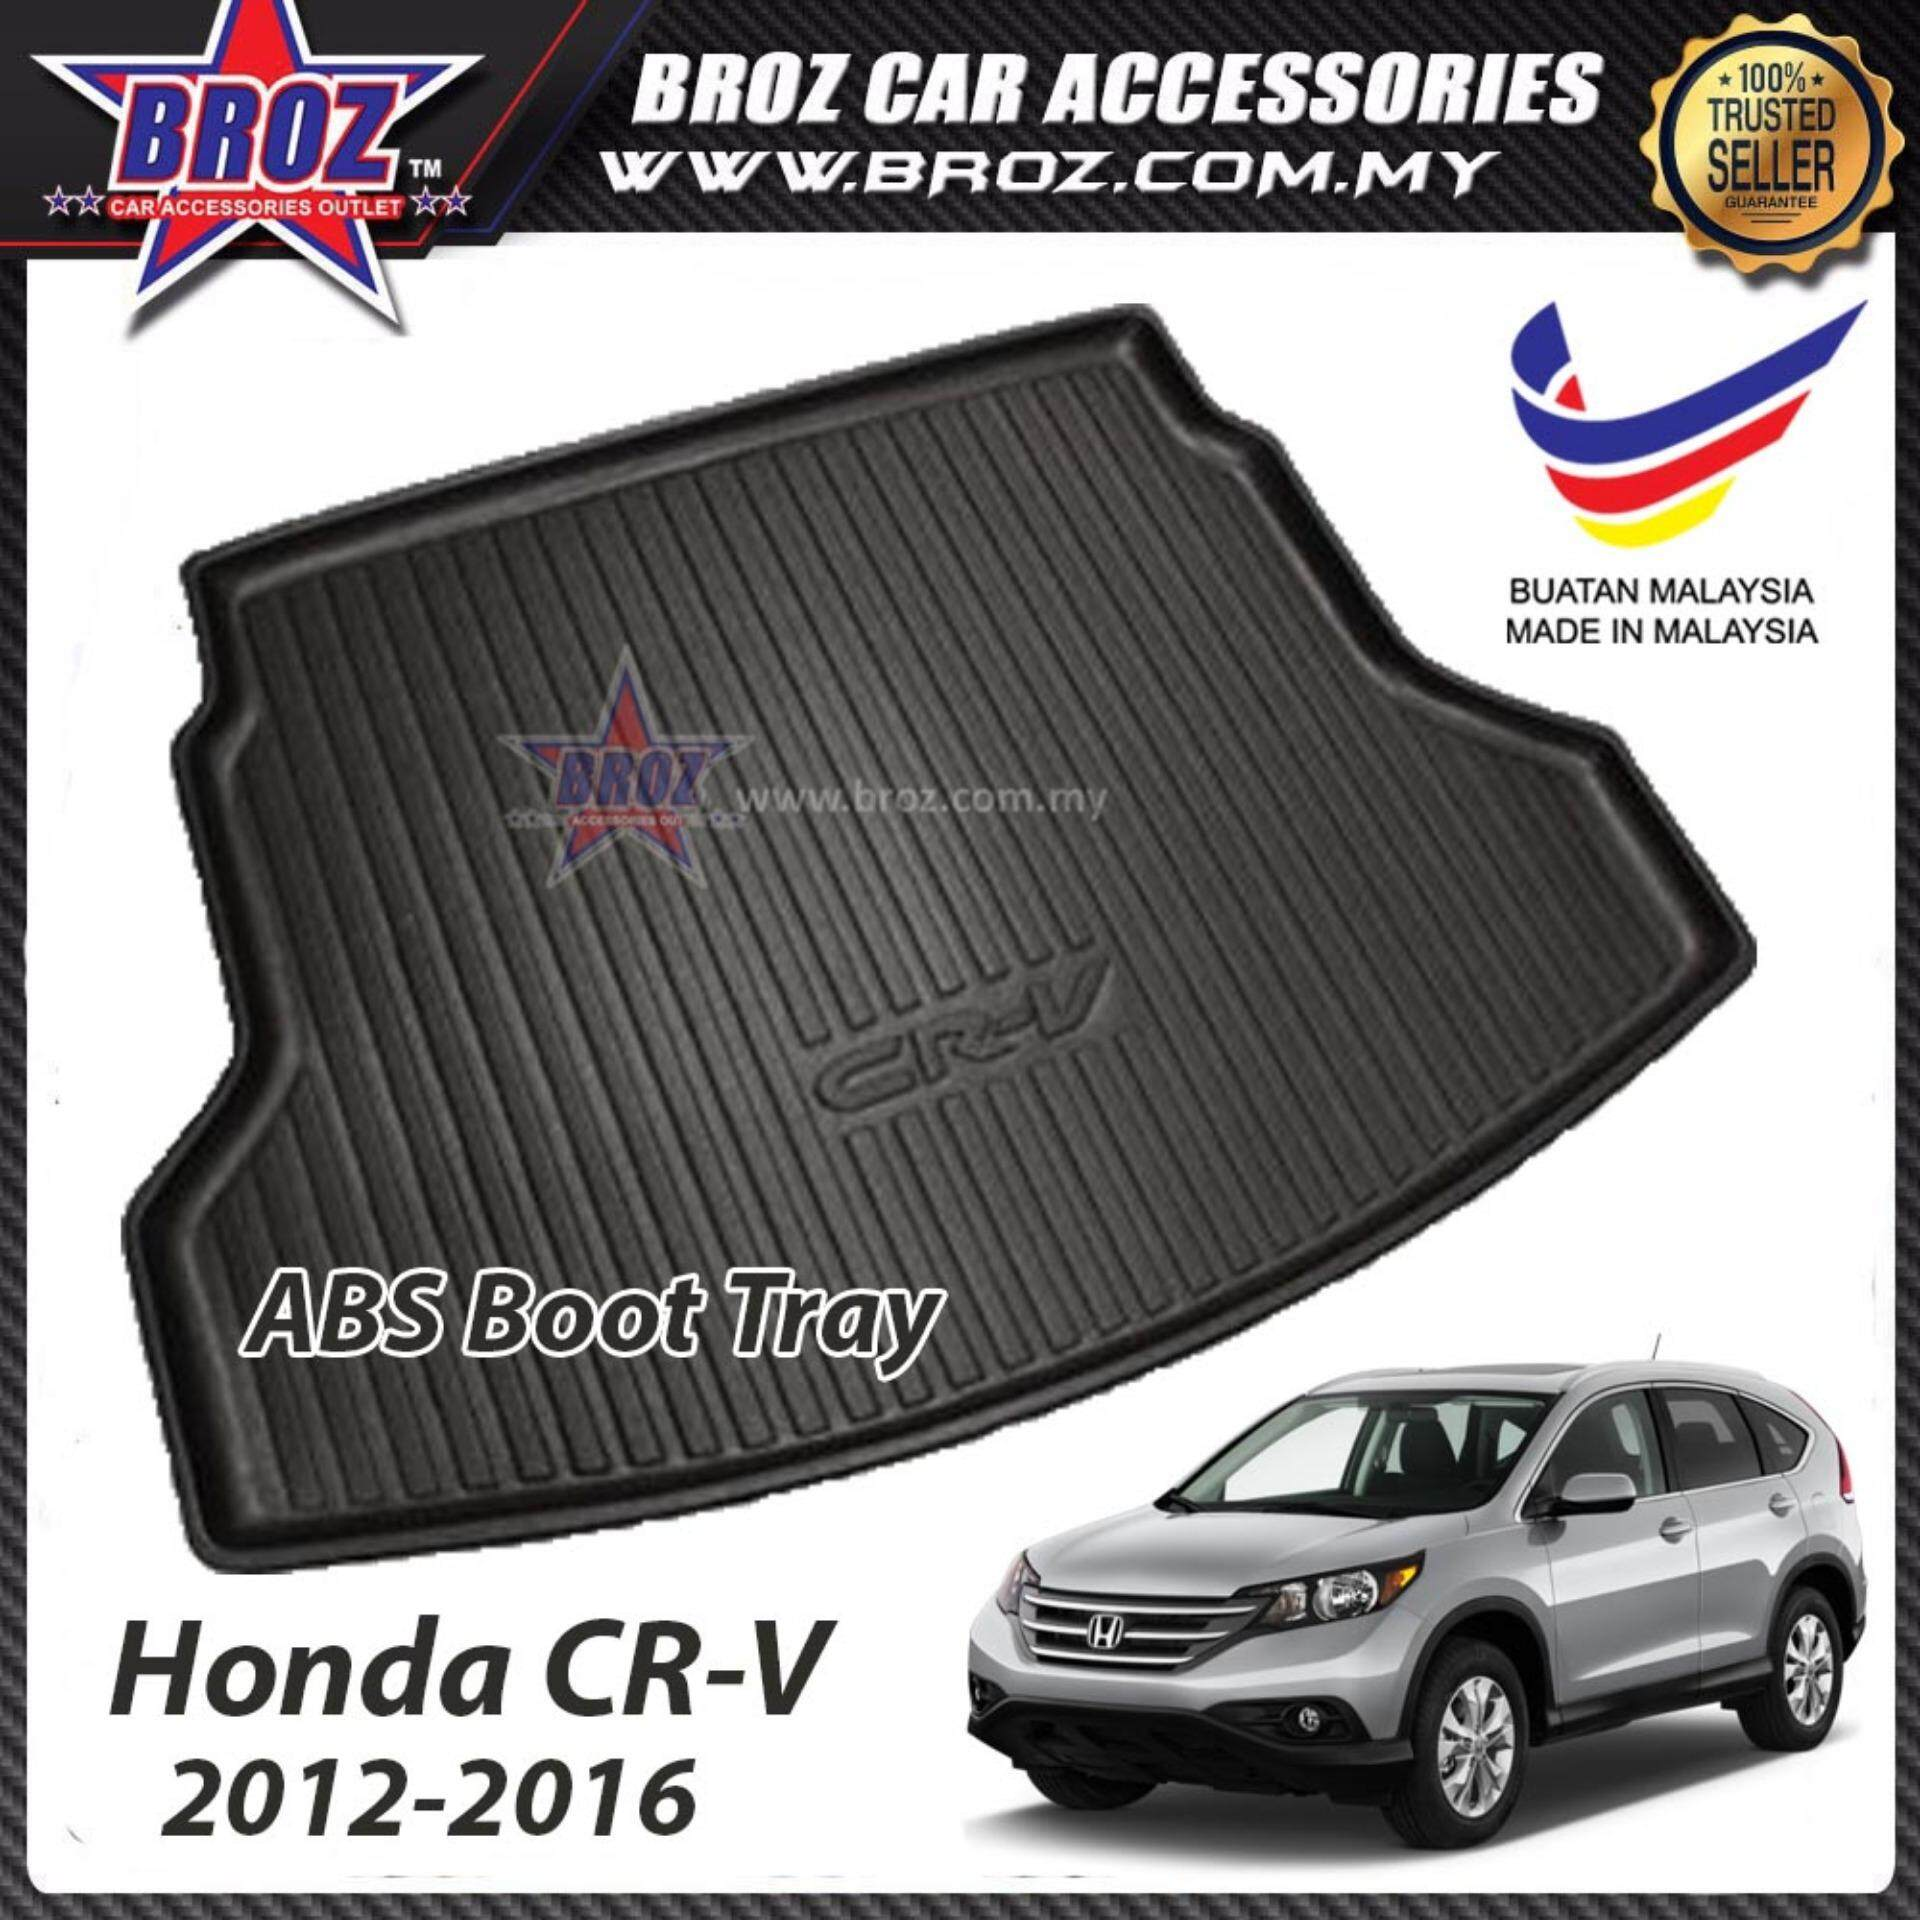 Honda CRV 2012-2016 ABS Car Rear Boot Trunk Tray